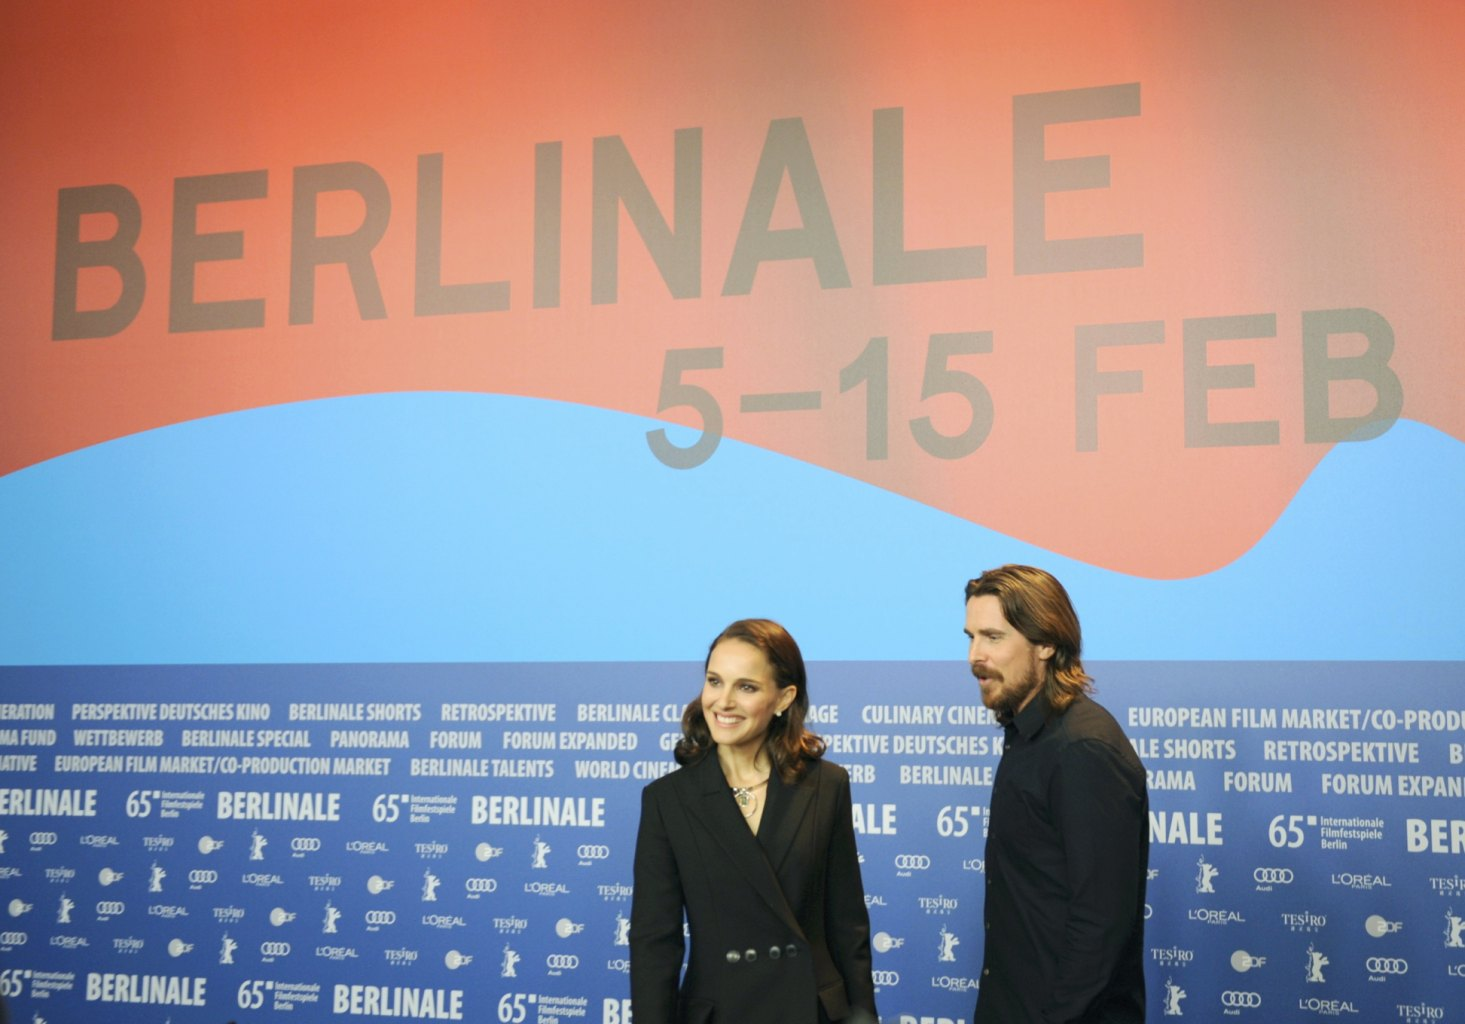 press-conference-berlin_08022015 (12)